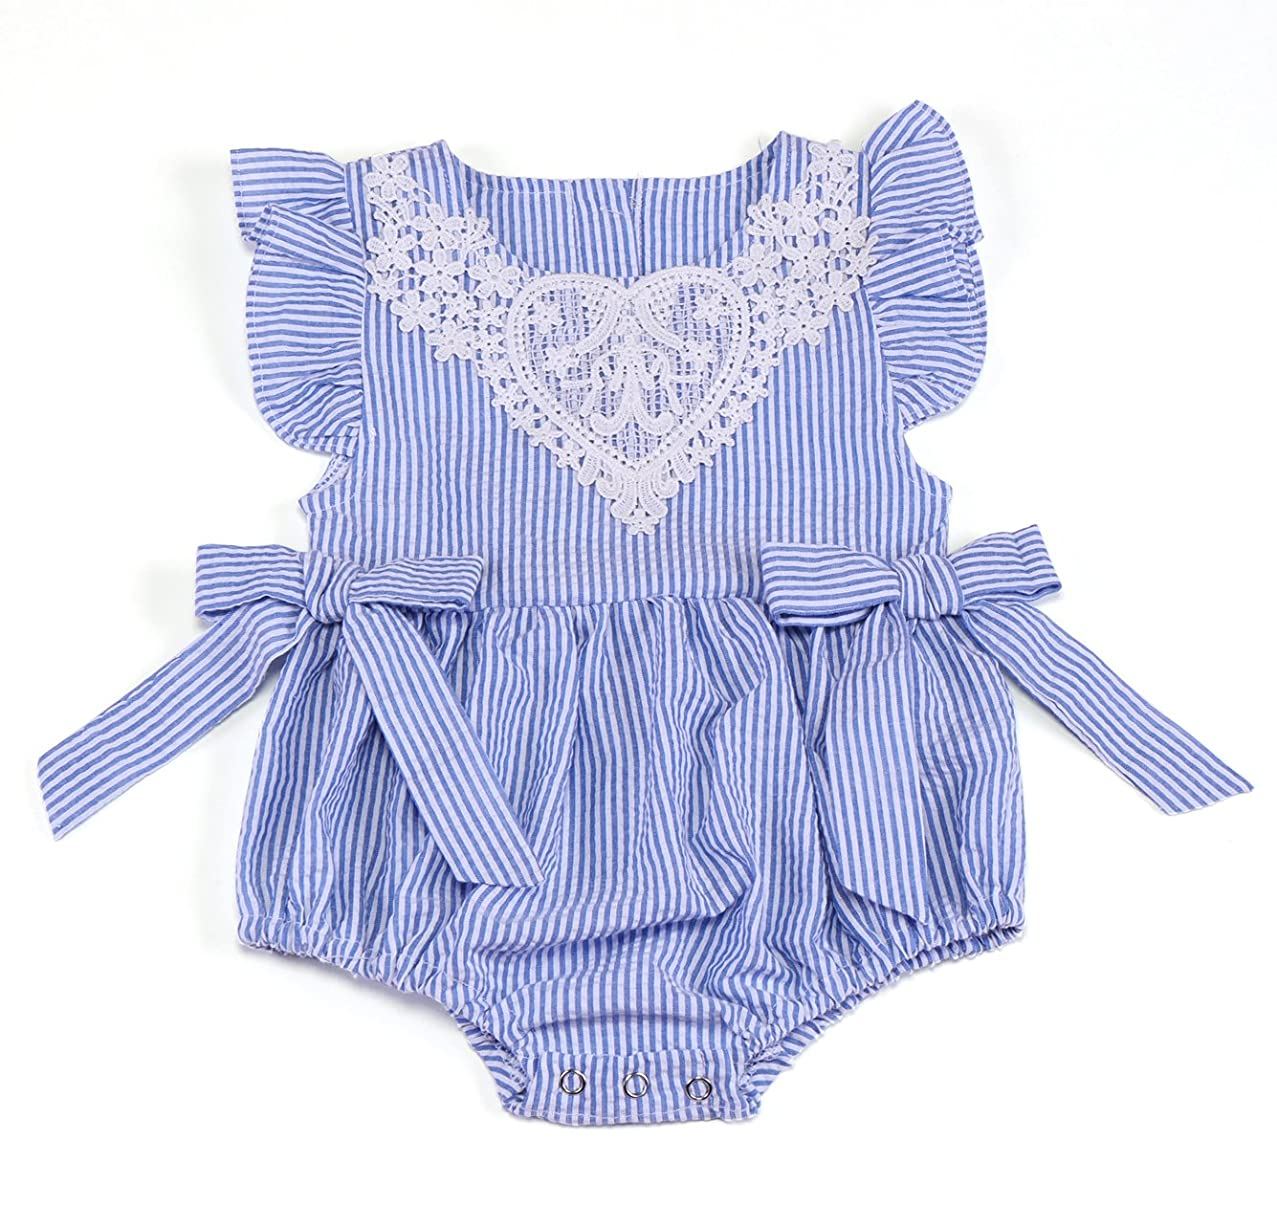 AILOM Newborn Baby Girl Short Sleeve Striped Seersucker Bubble Straps Ruffle Layers Bowknot Summer Romper Bodysuit